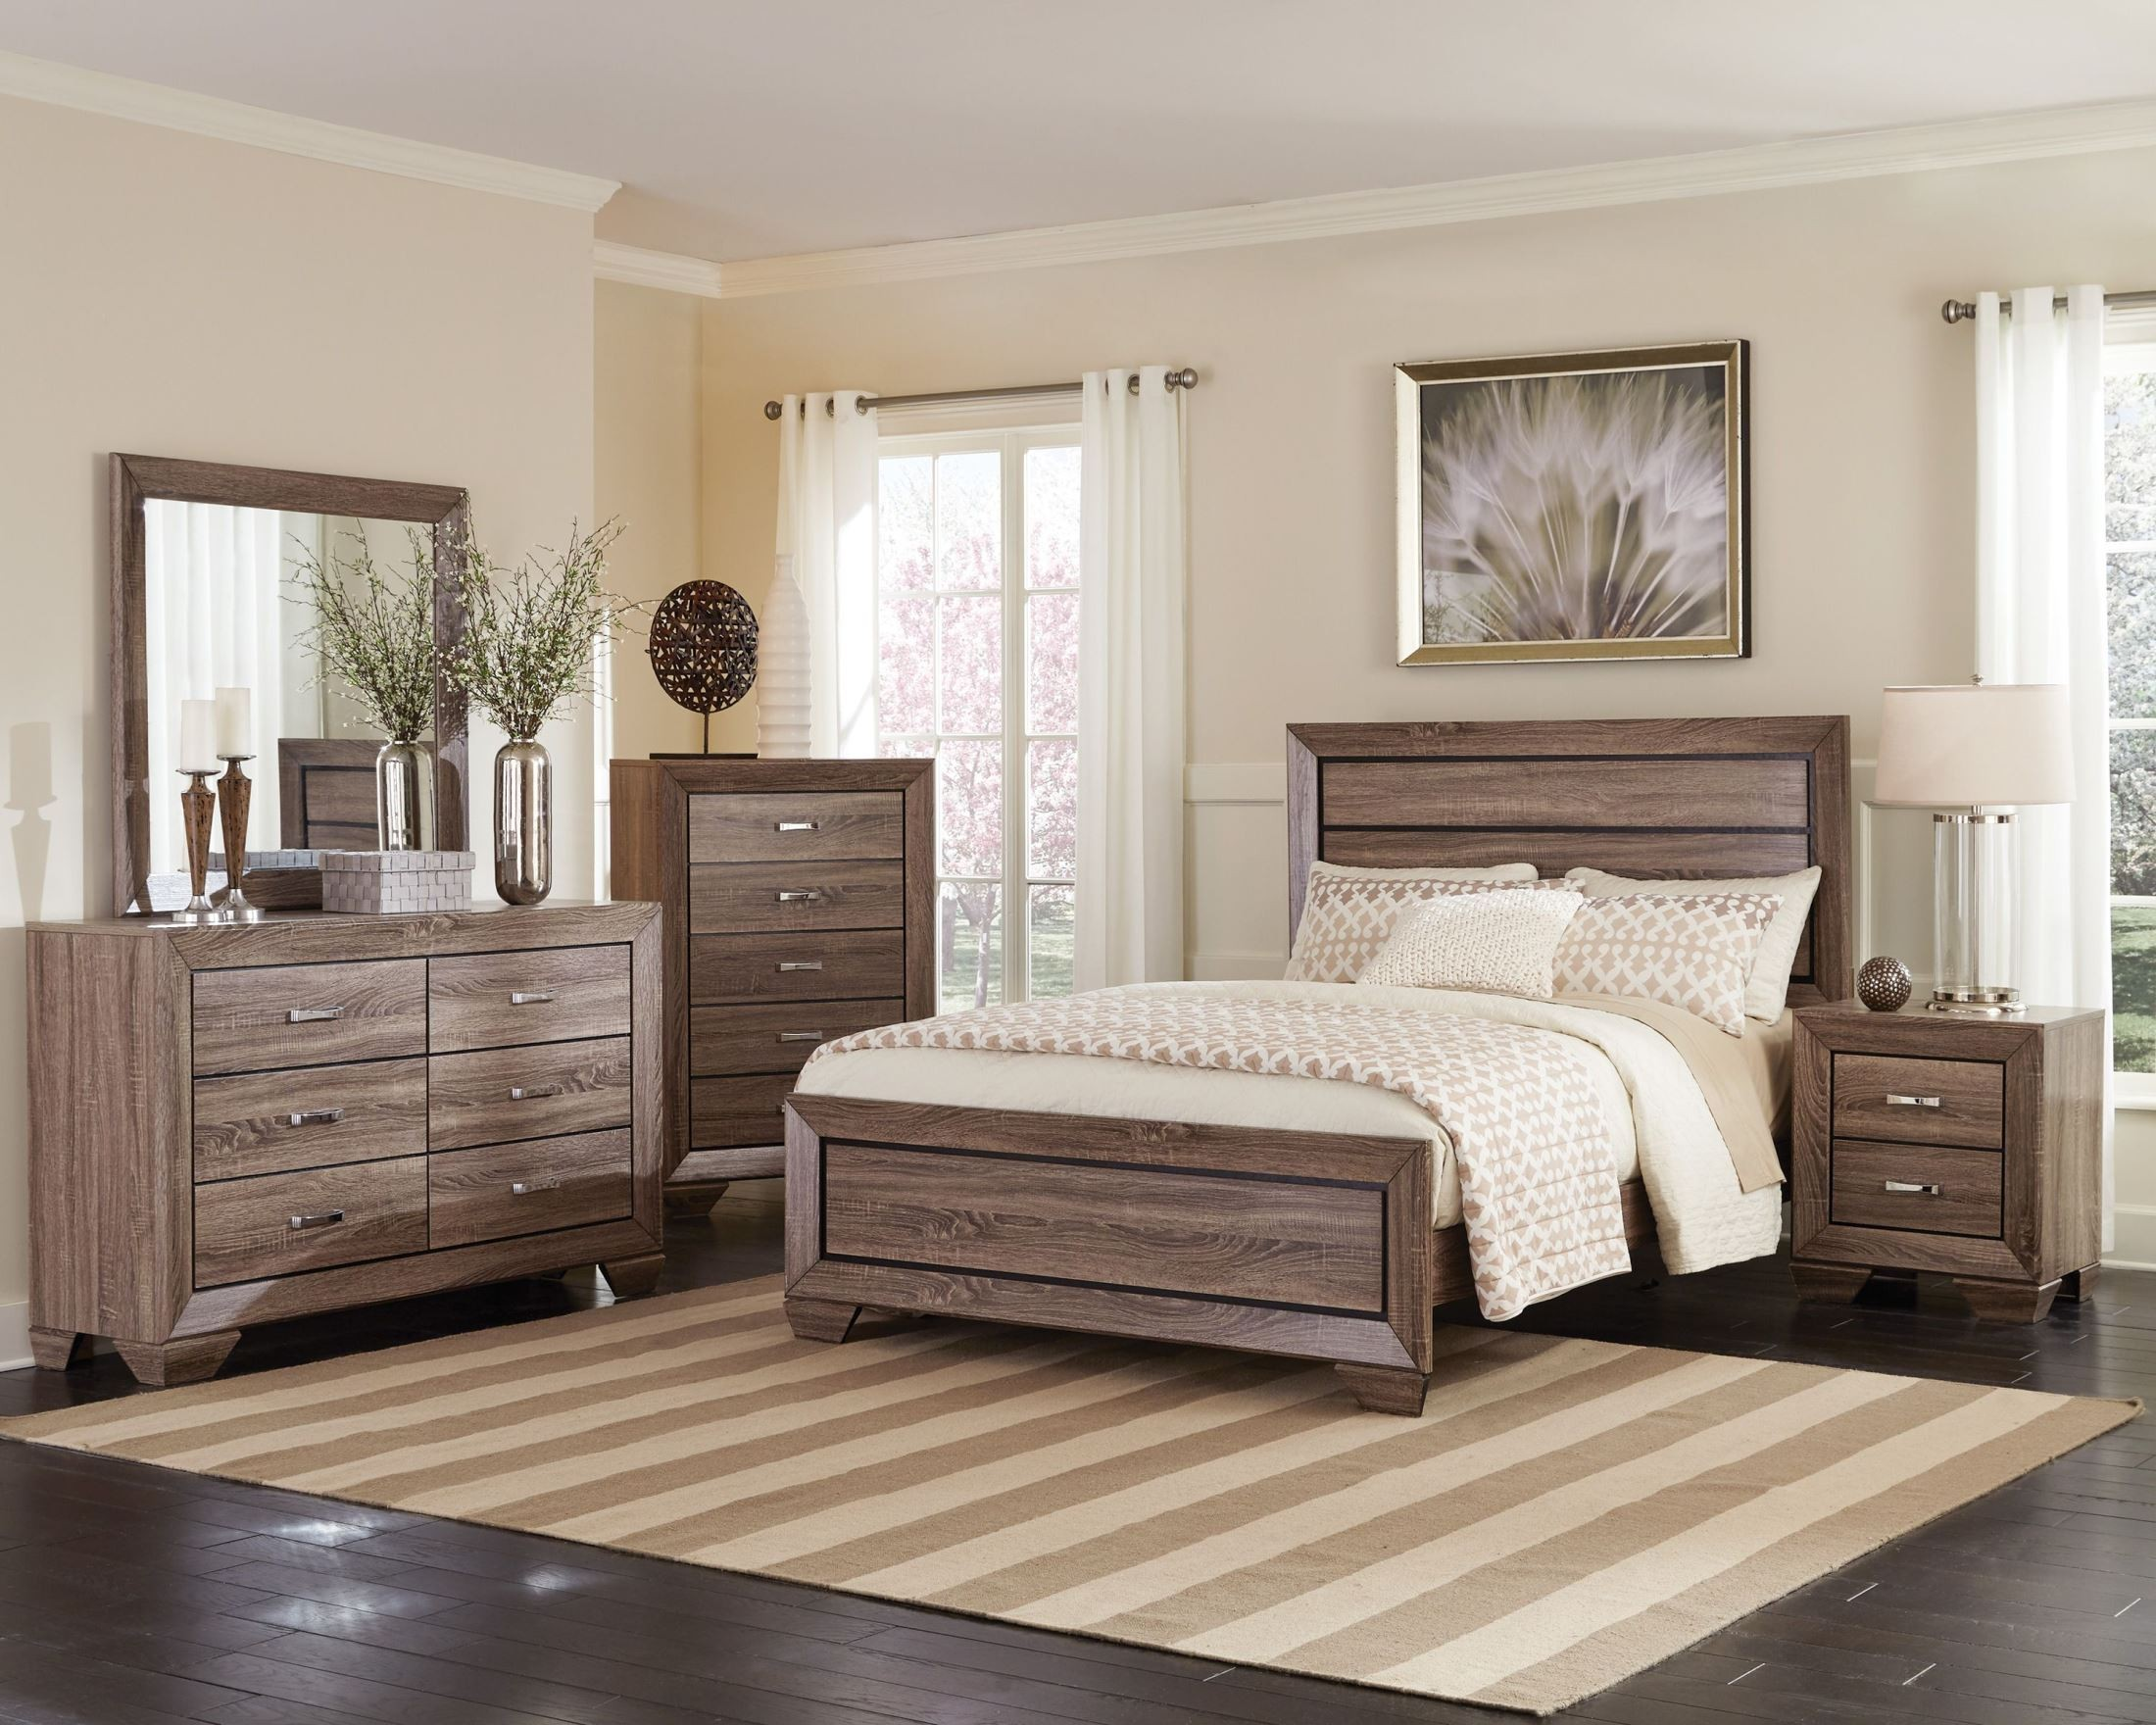 Kauffman washed taupe panel bedroom set from coaster for American bedrooms